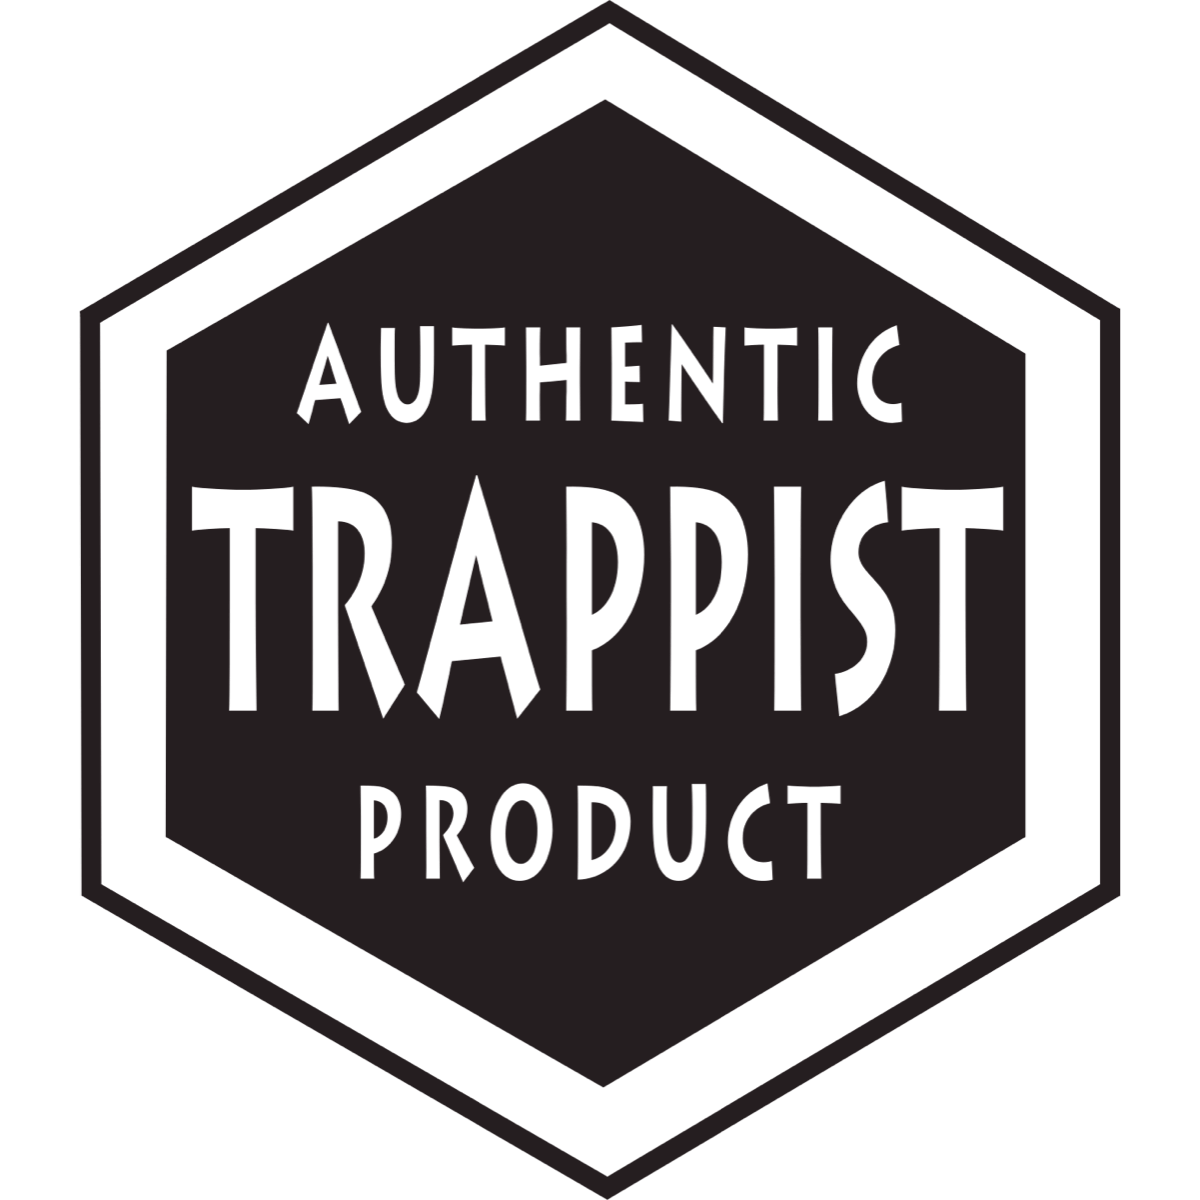 C'est ce logo « Authentic Trappist Product